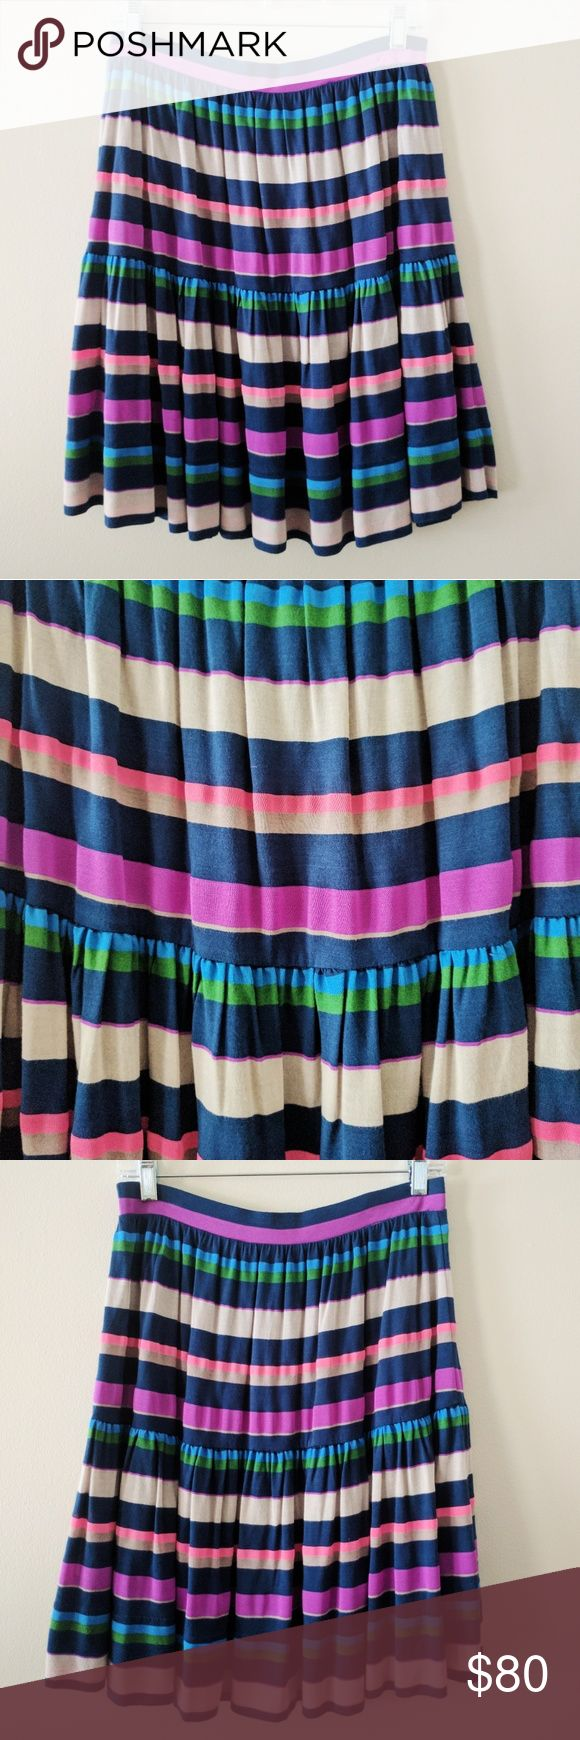 "Marc Jacobs multi color skirt New with tags, appx 20"", built in blue under slip, elastic waistband Marc Jacobs Skirts Midi"